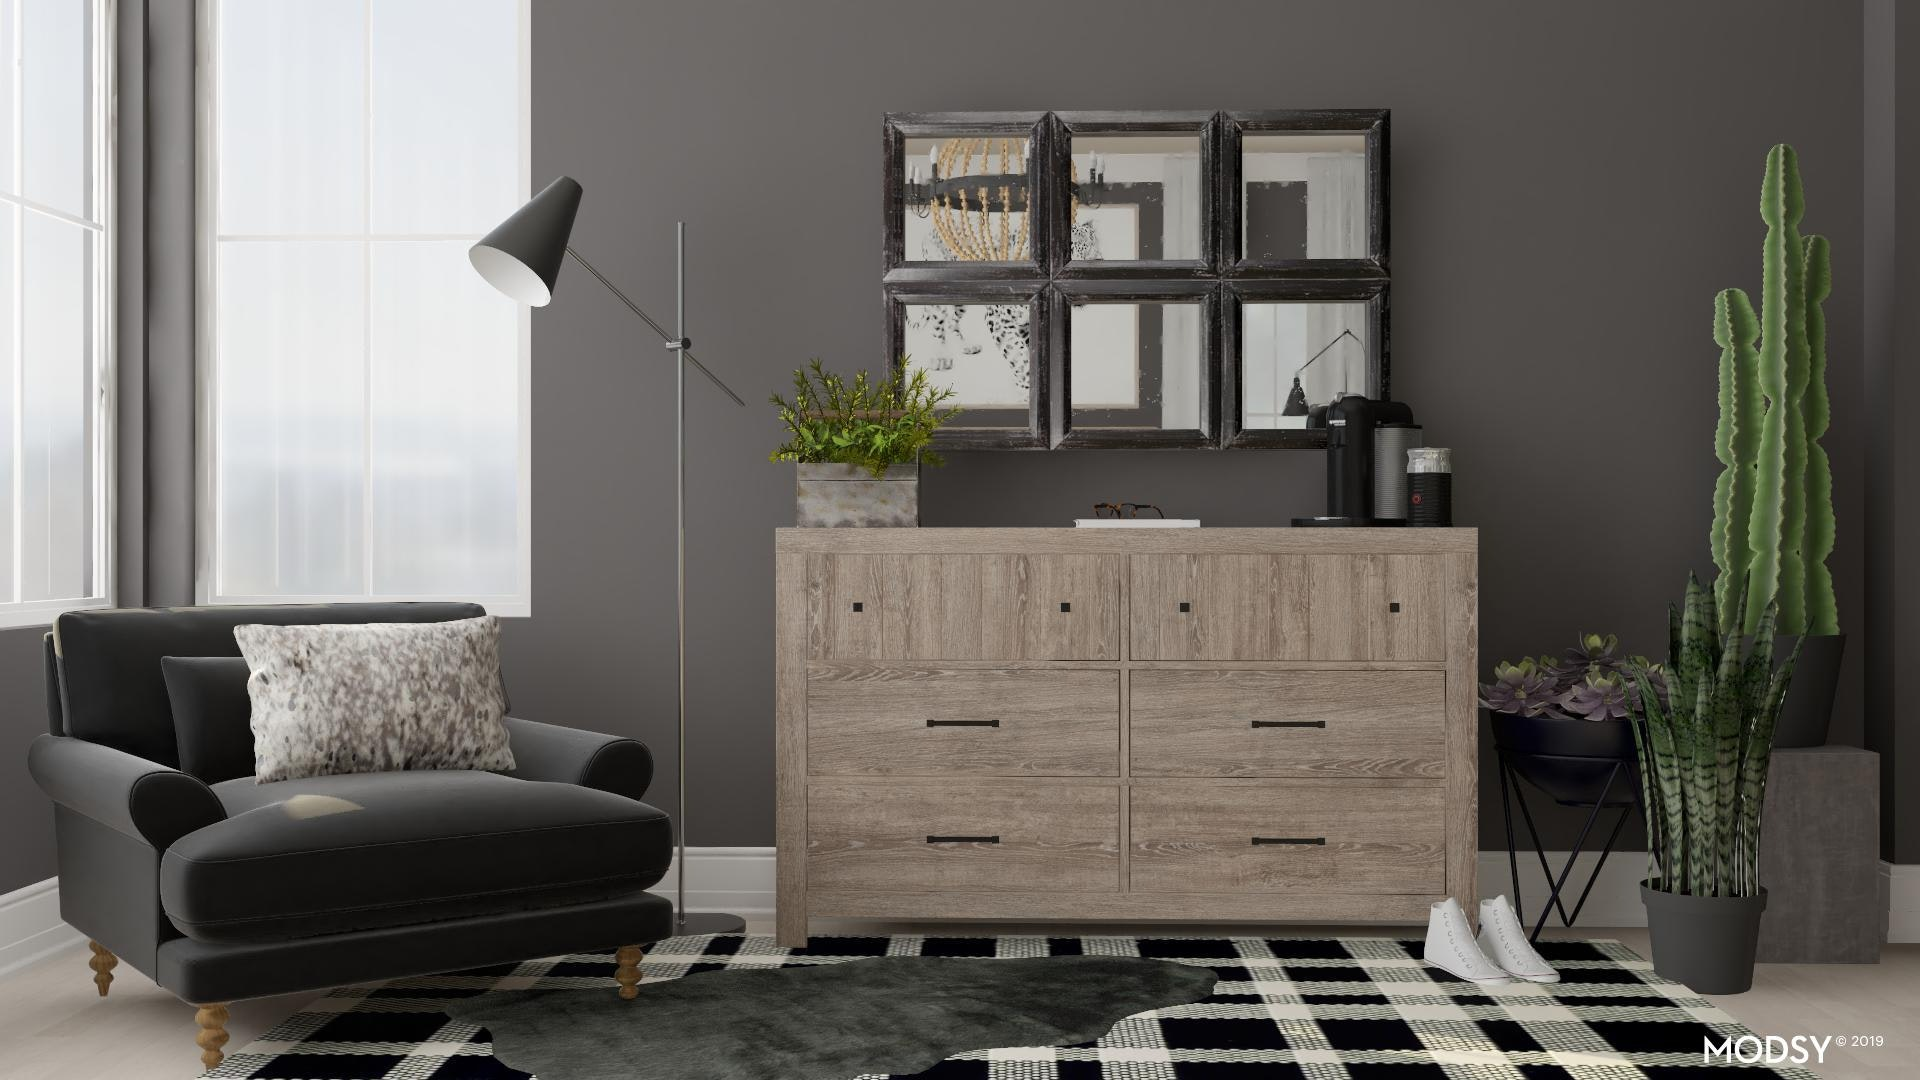 Rustic Design Ideas And Styles From Modsy Designers